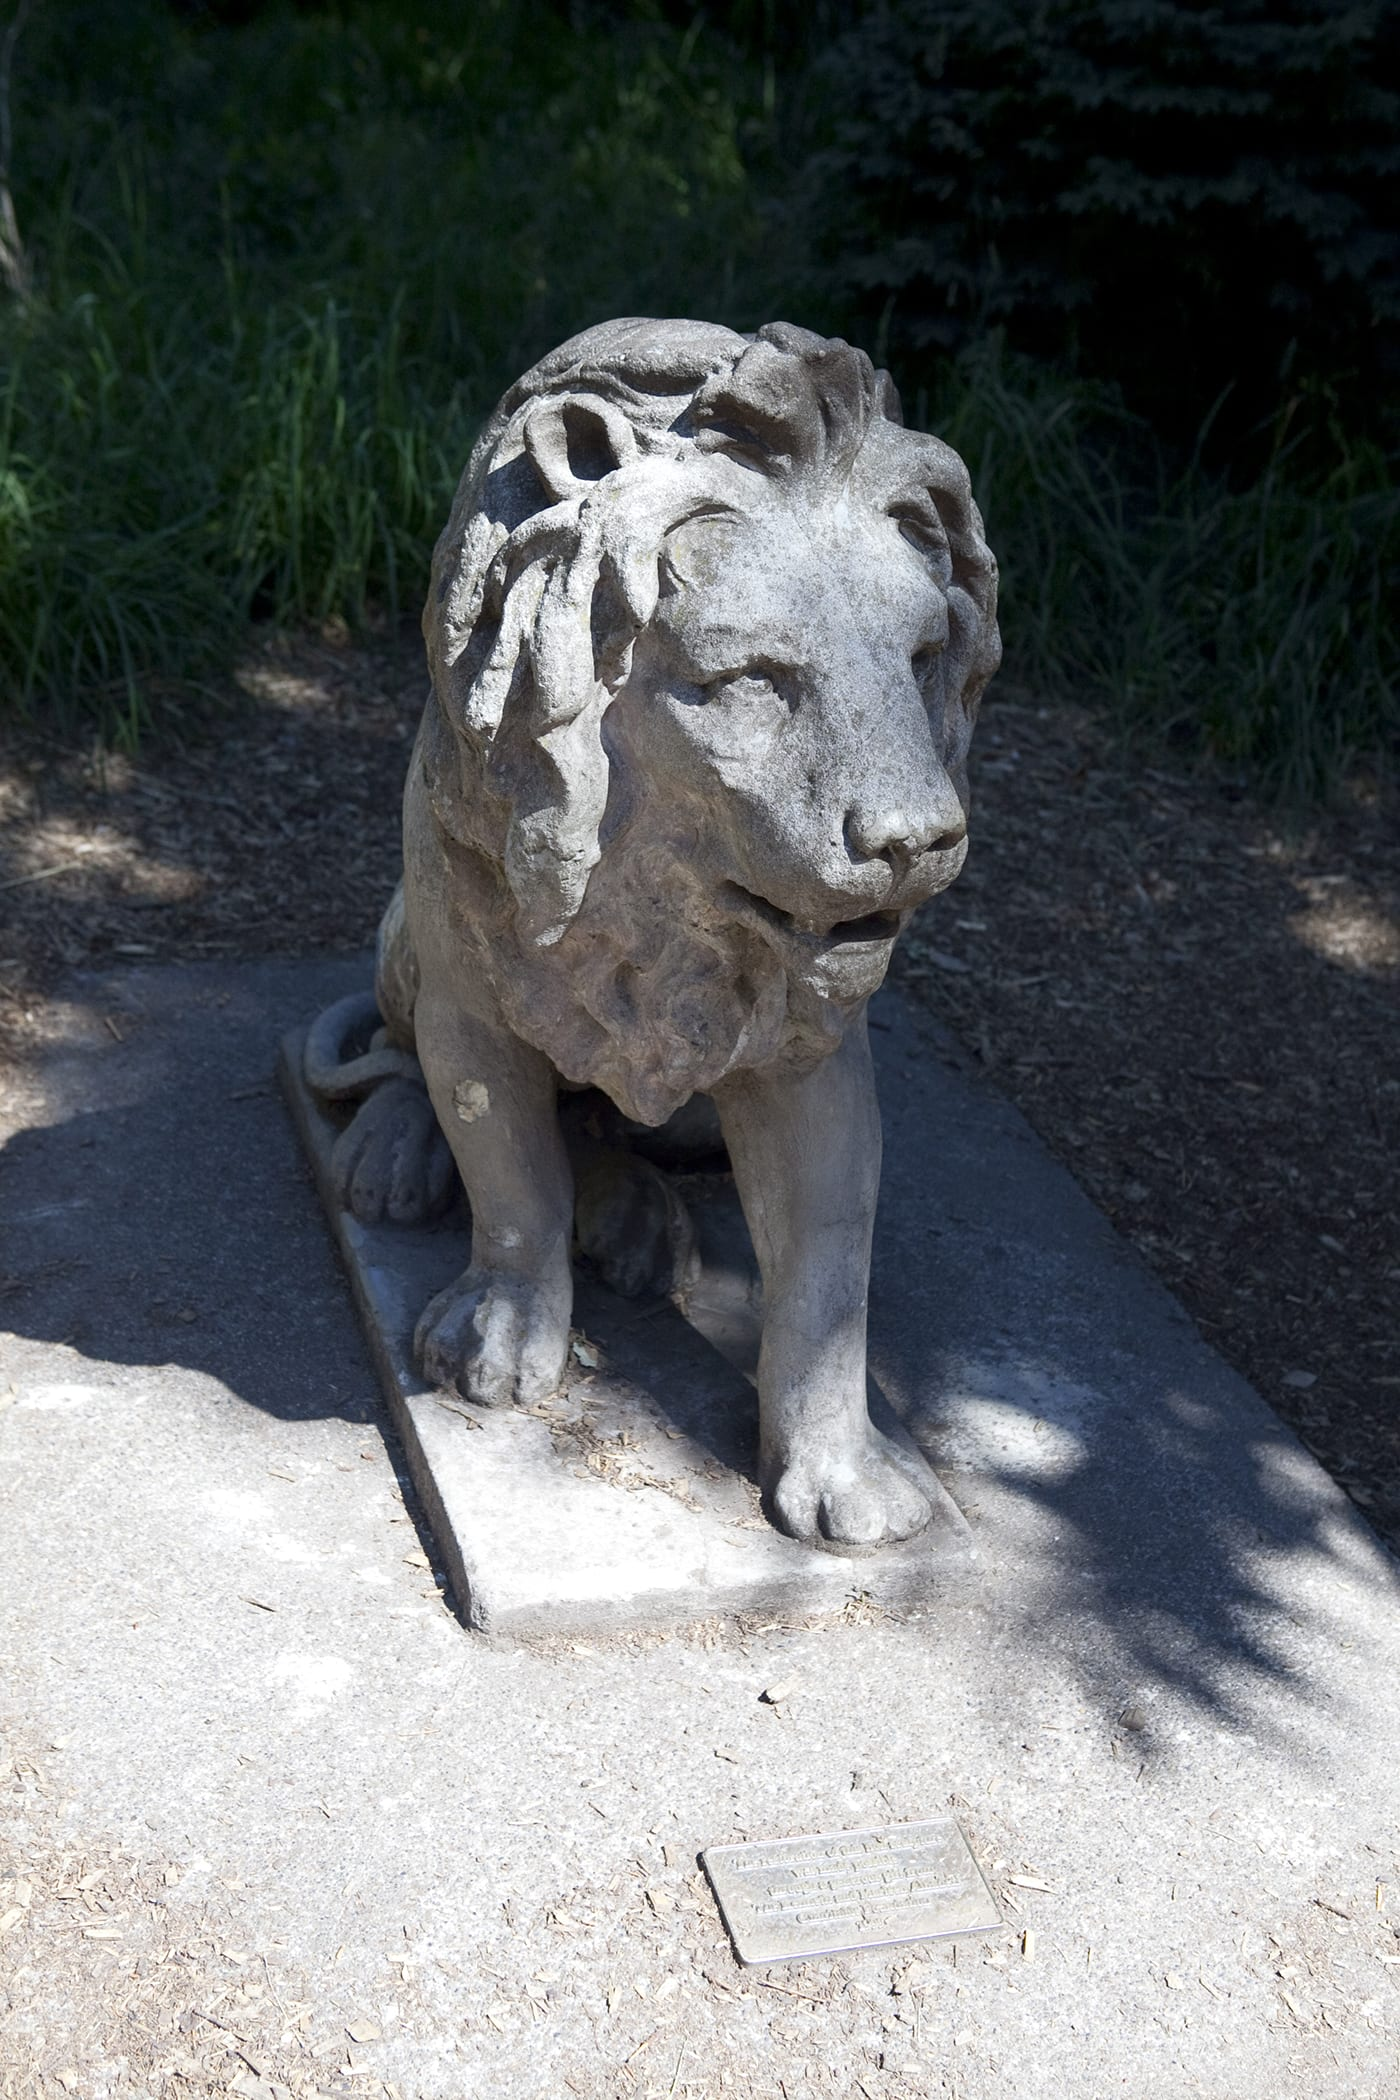 Lion Statue at Woodland Park Zoo in Seattle, Washington.